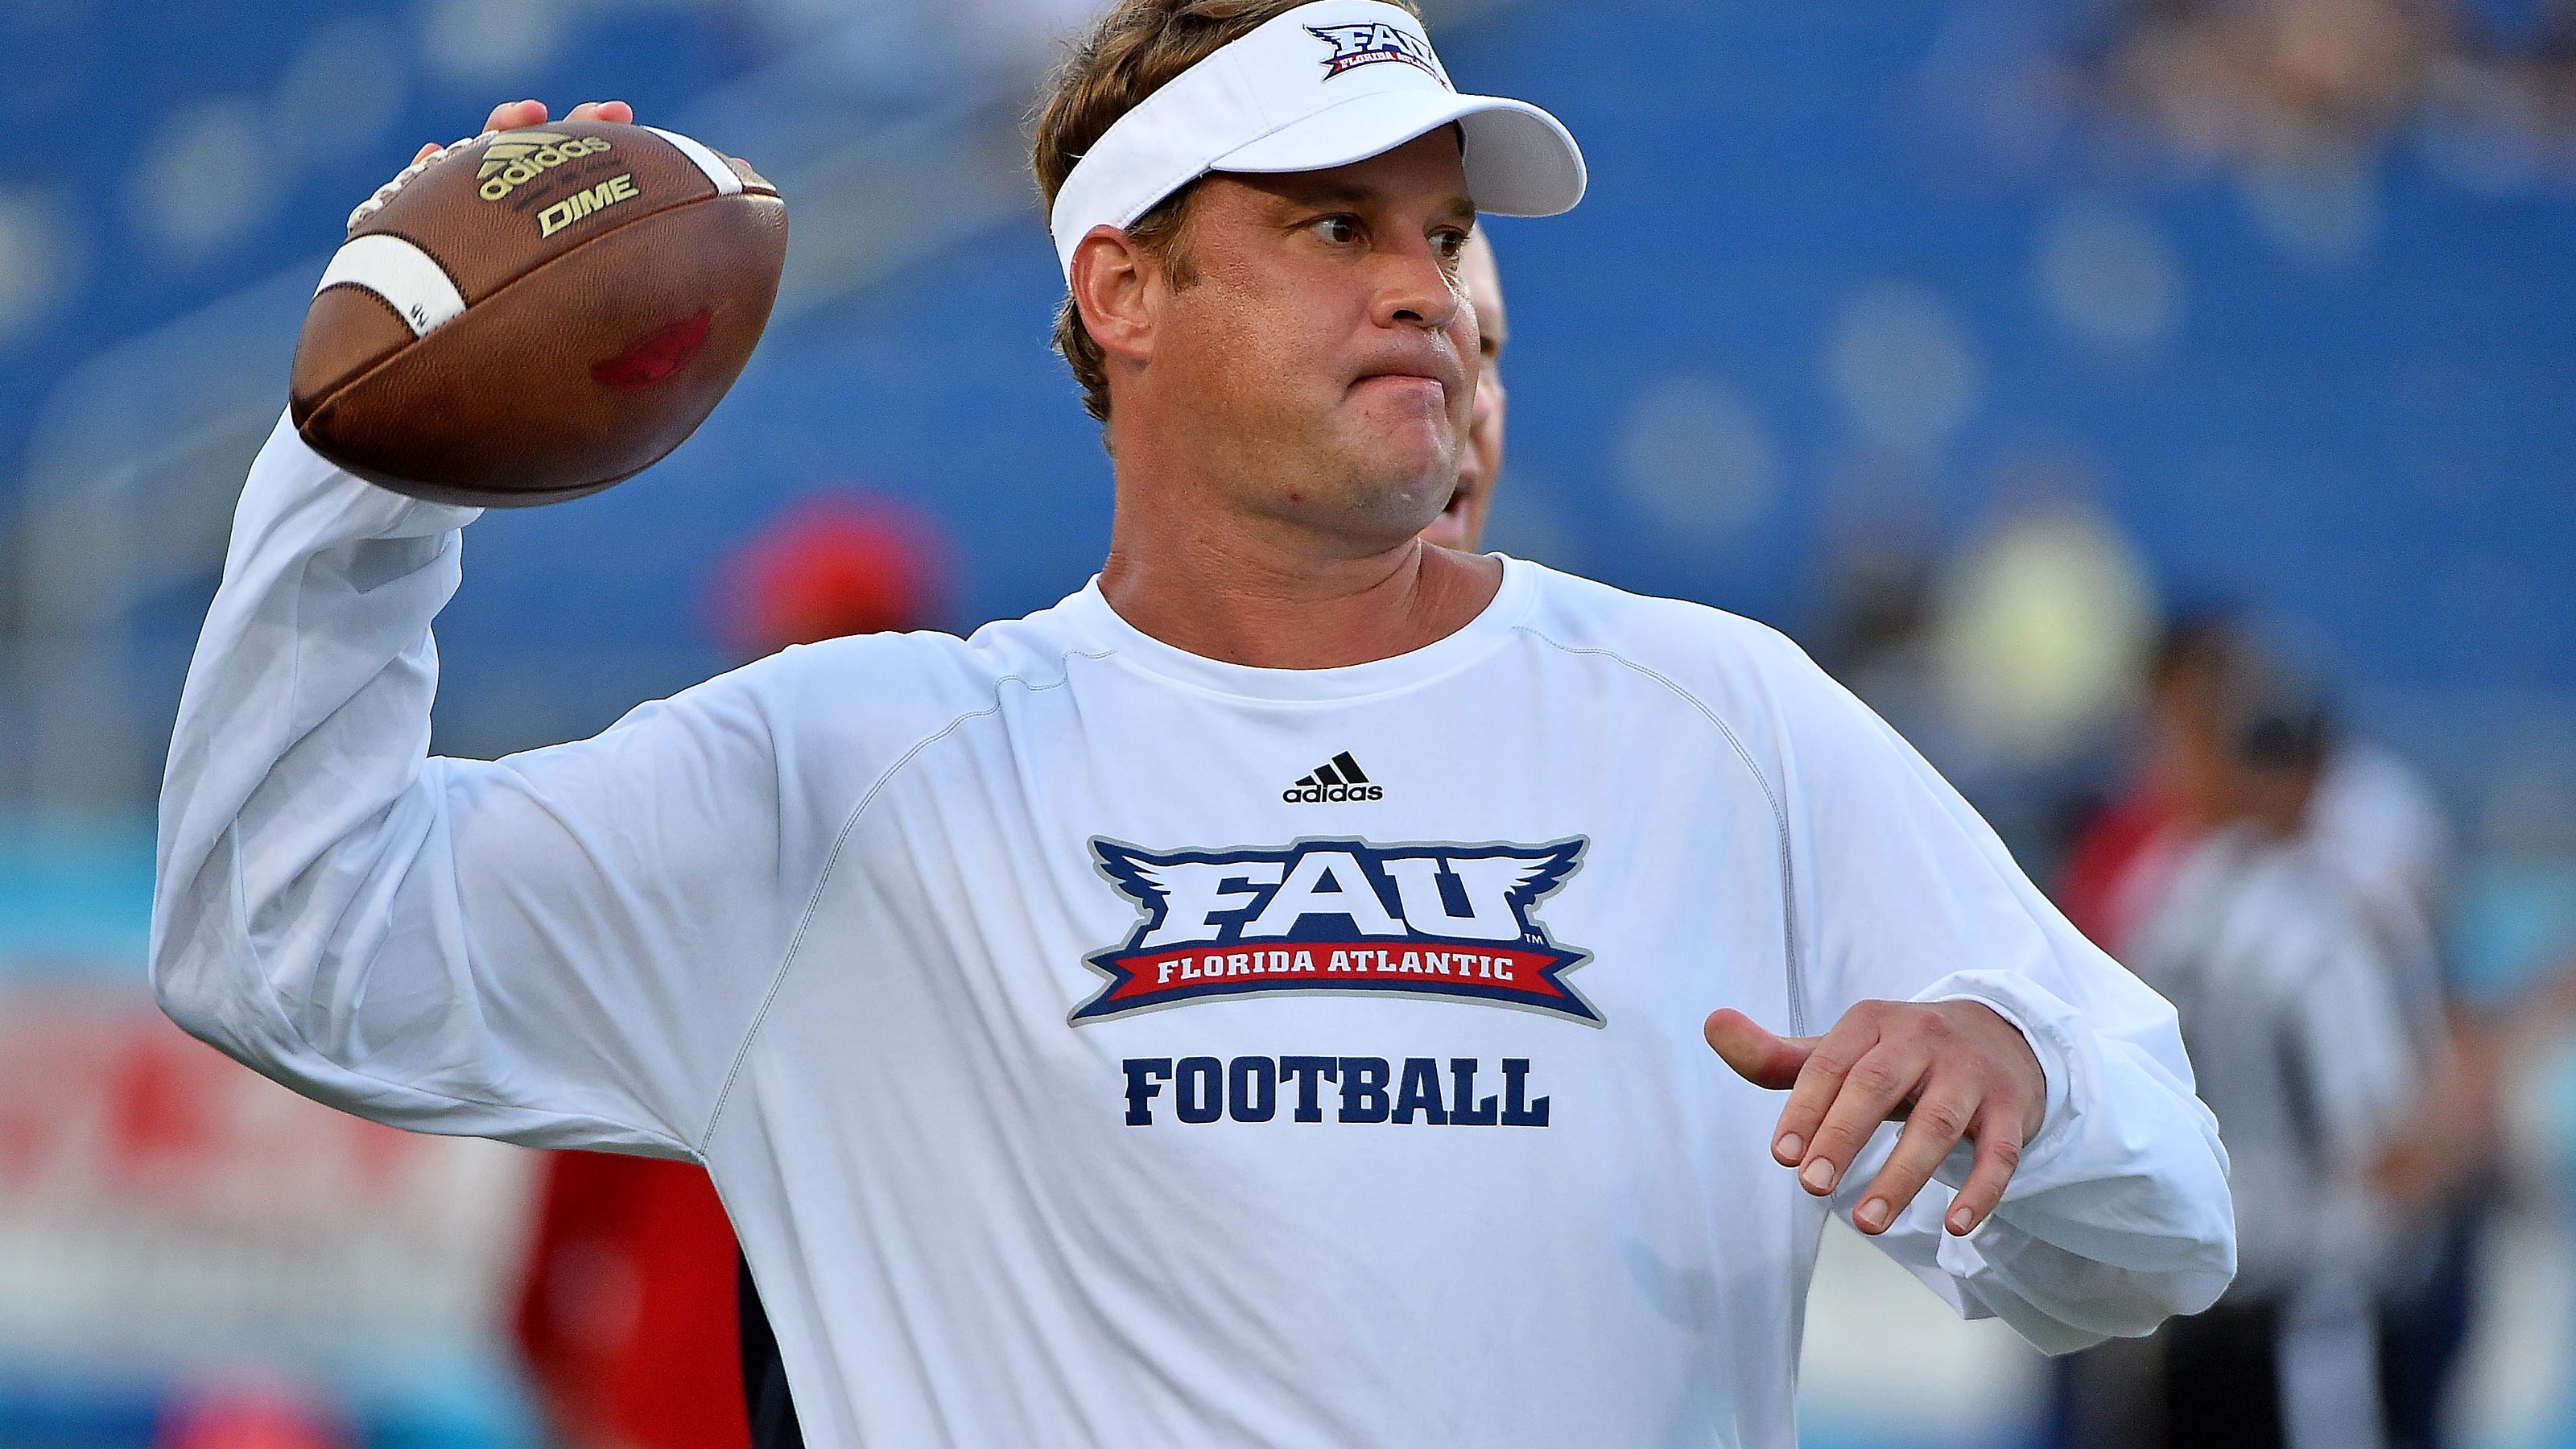 Image result for Lane Kiffin tweeted a Florida Atlantic scholarship offer to a six-month-old infant